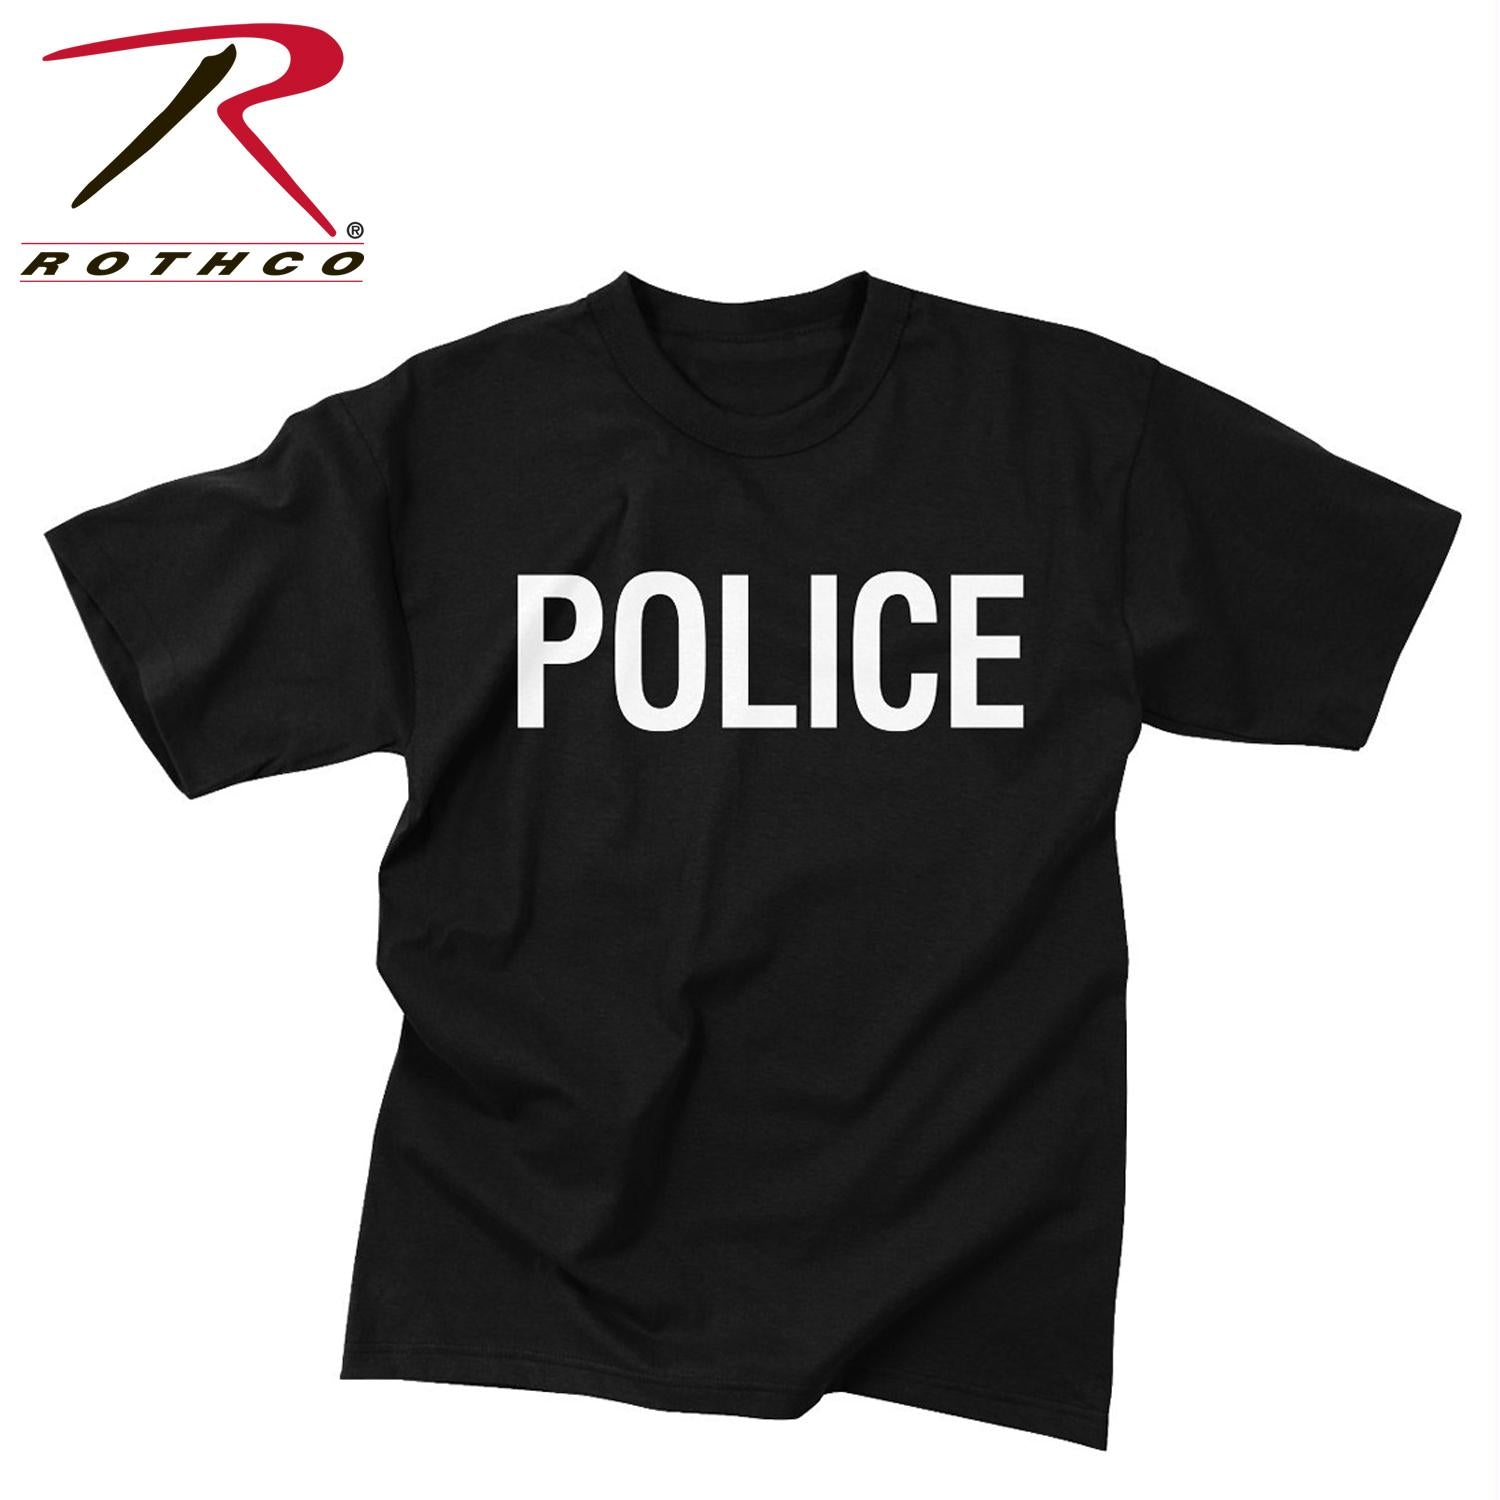 Rothco 2-Sided Police T-Shirt - M